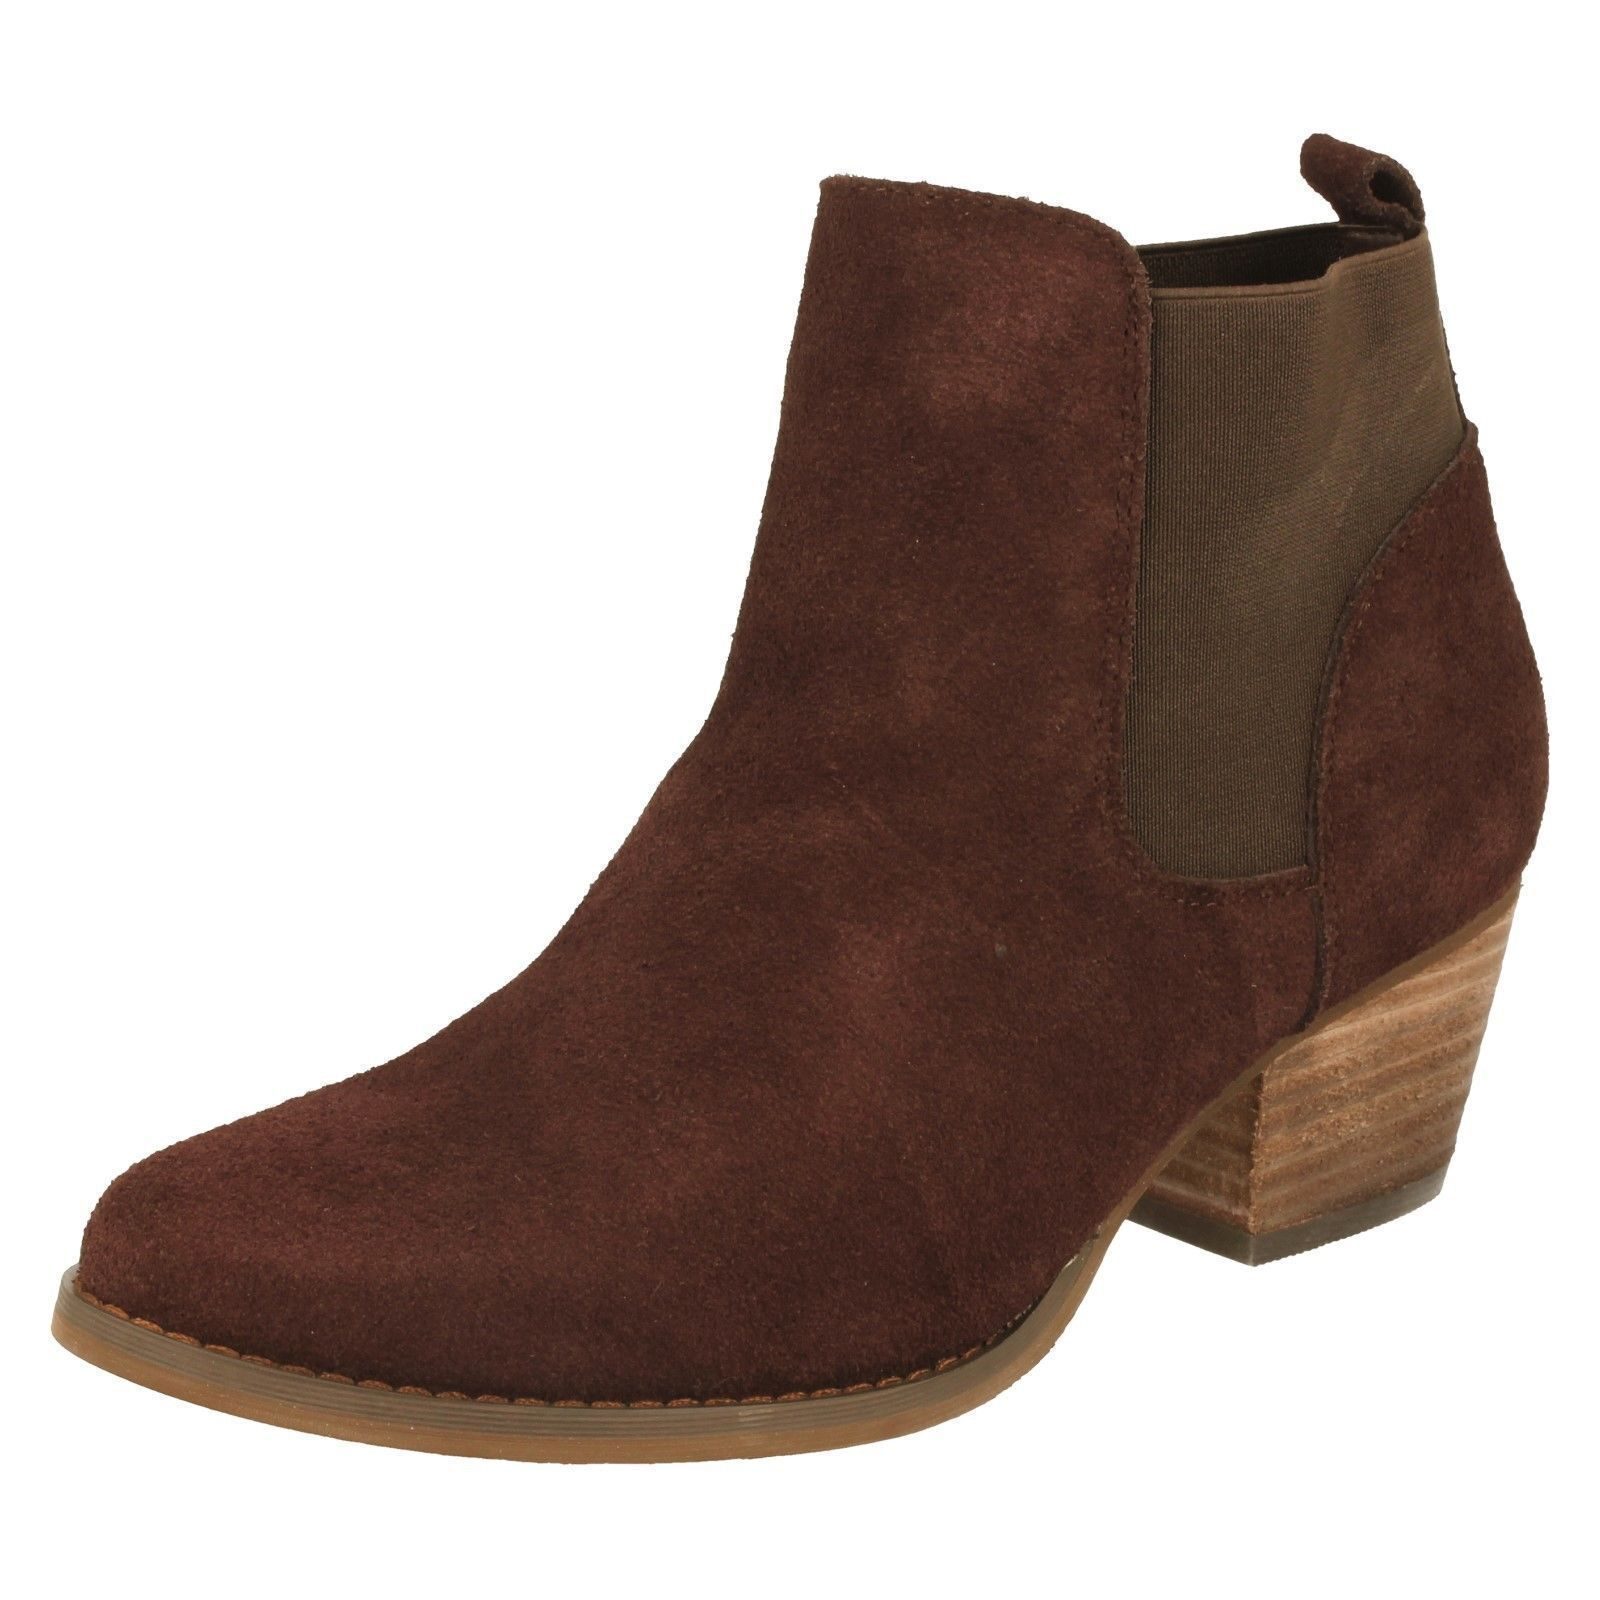 Down To Earth F50678 Ladies Brown Leather Suede Pull On Ankle Chelsea Boots